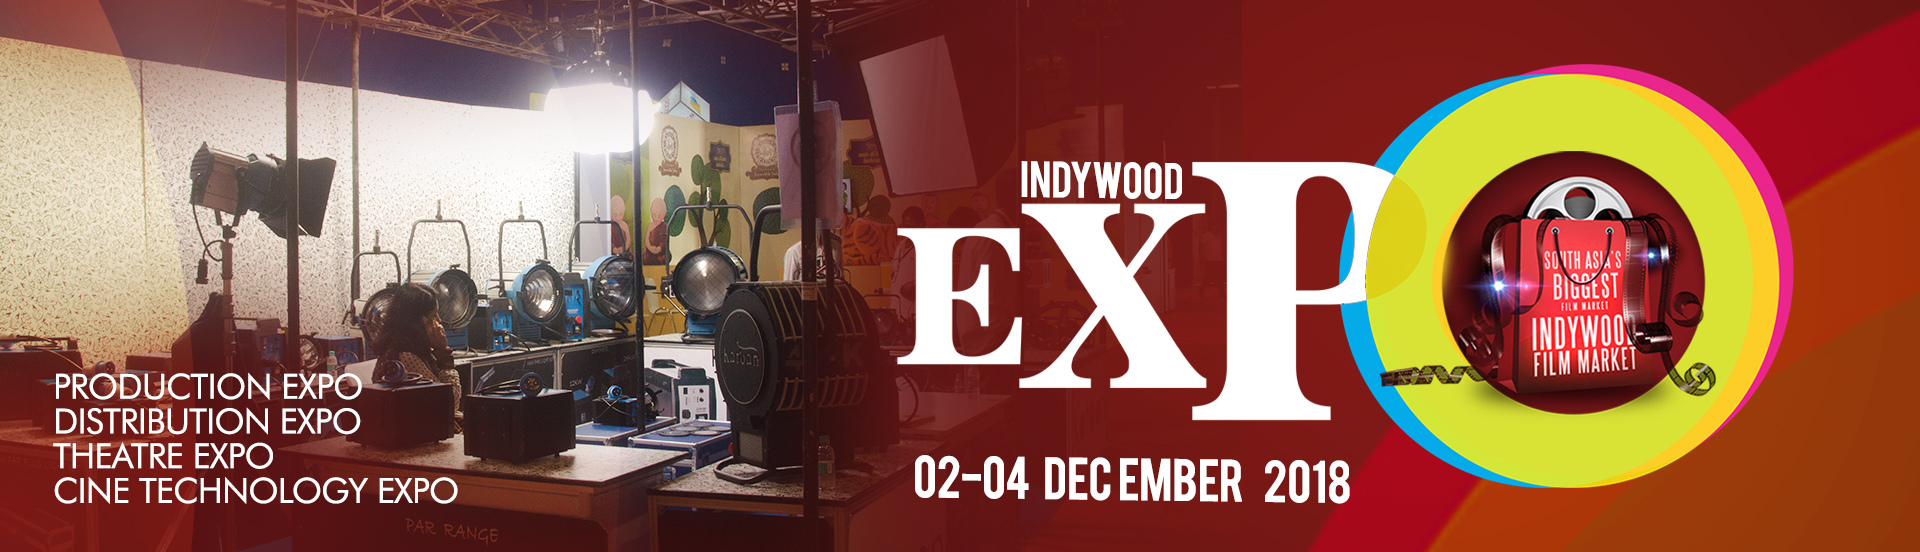 Film Expo, Film Production, Film Distribution, Cine Tech Expo India